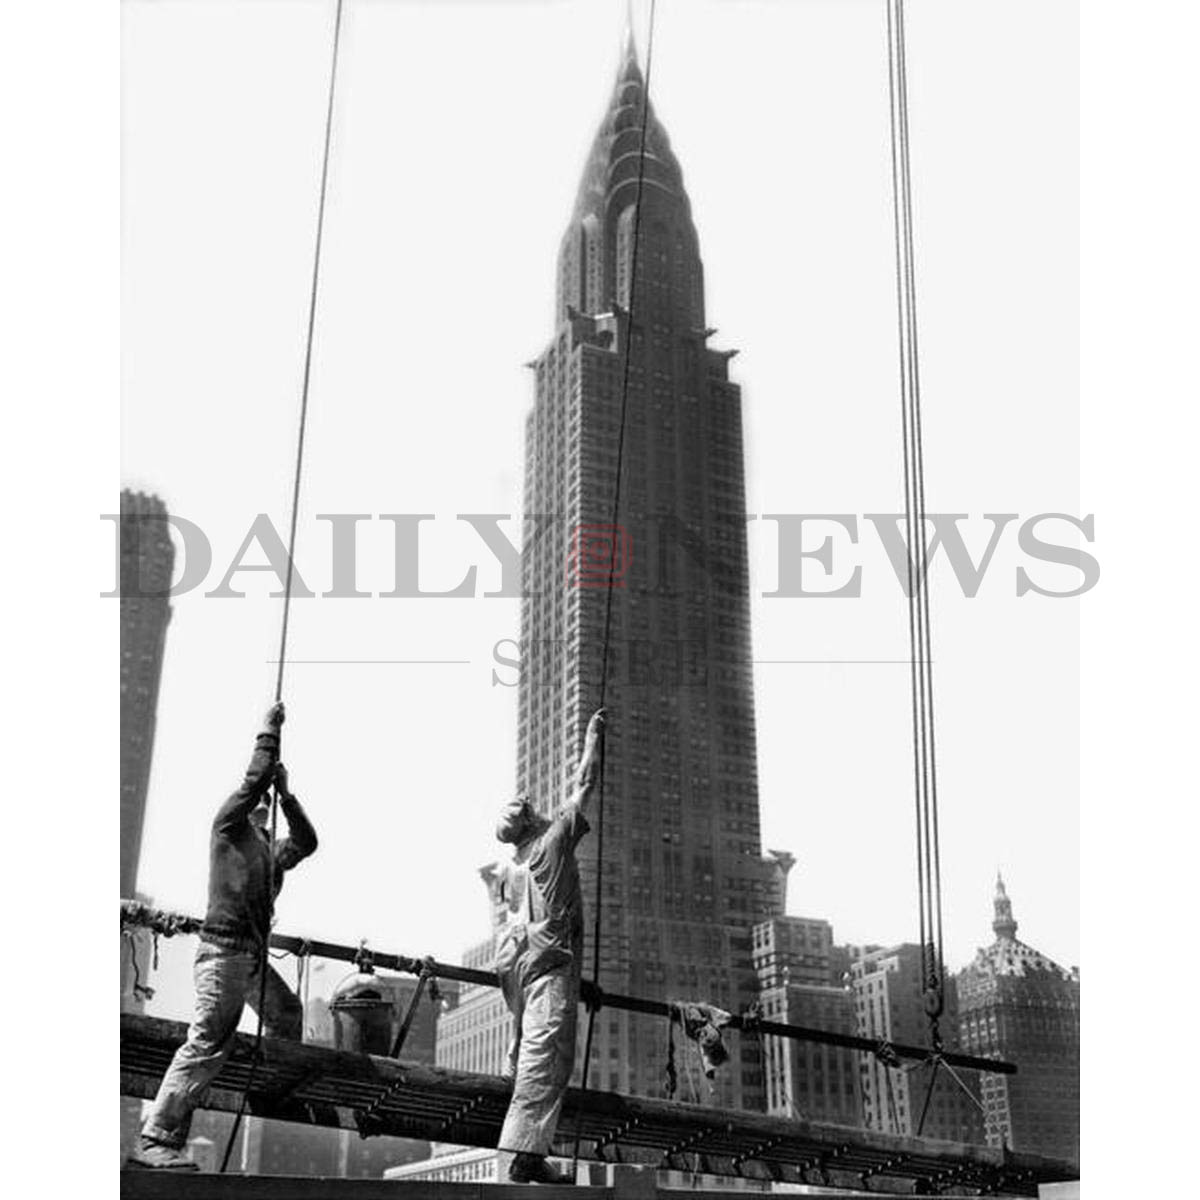 Workers washing the Daily News Building